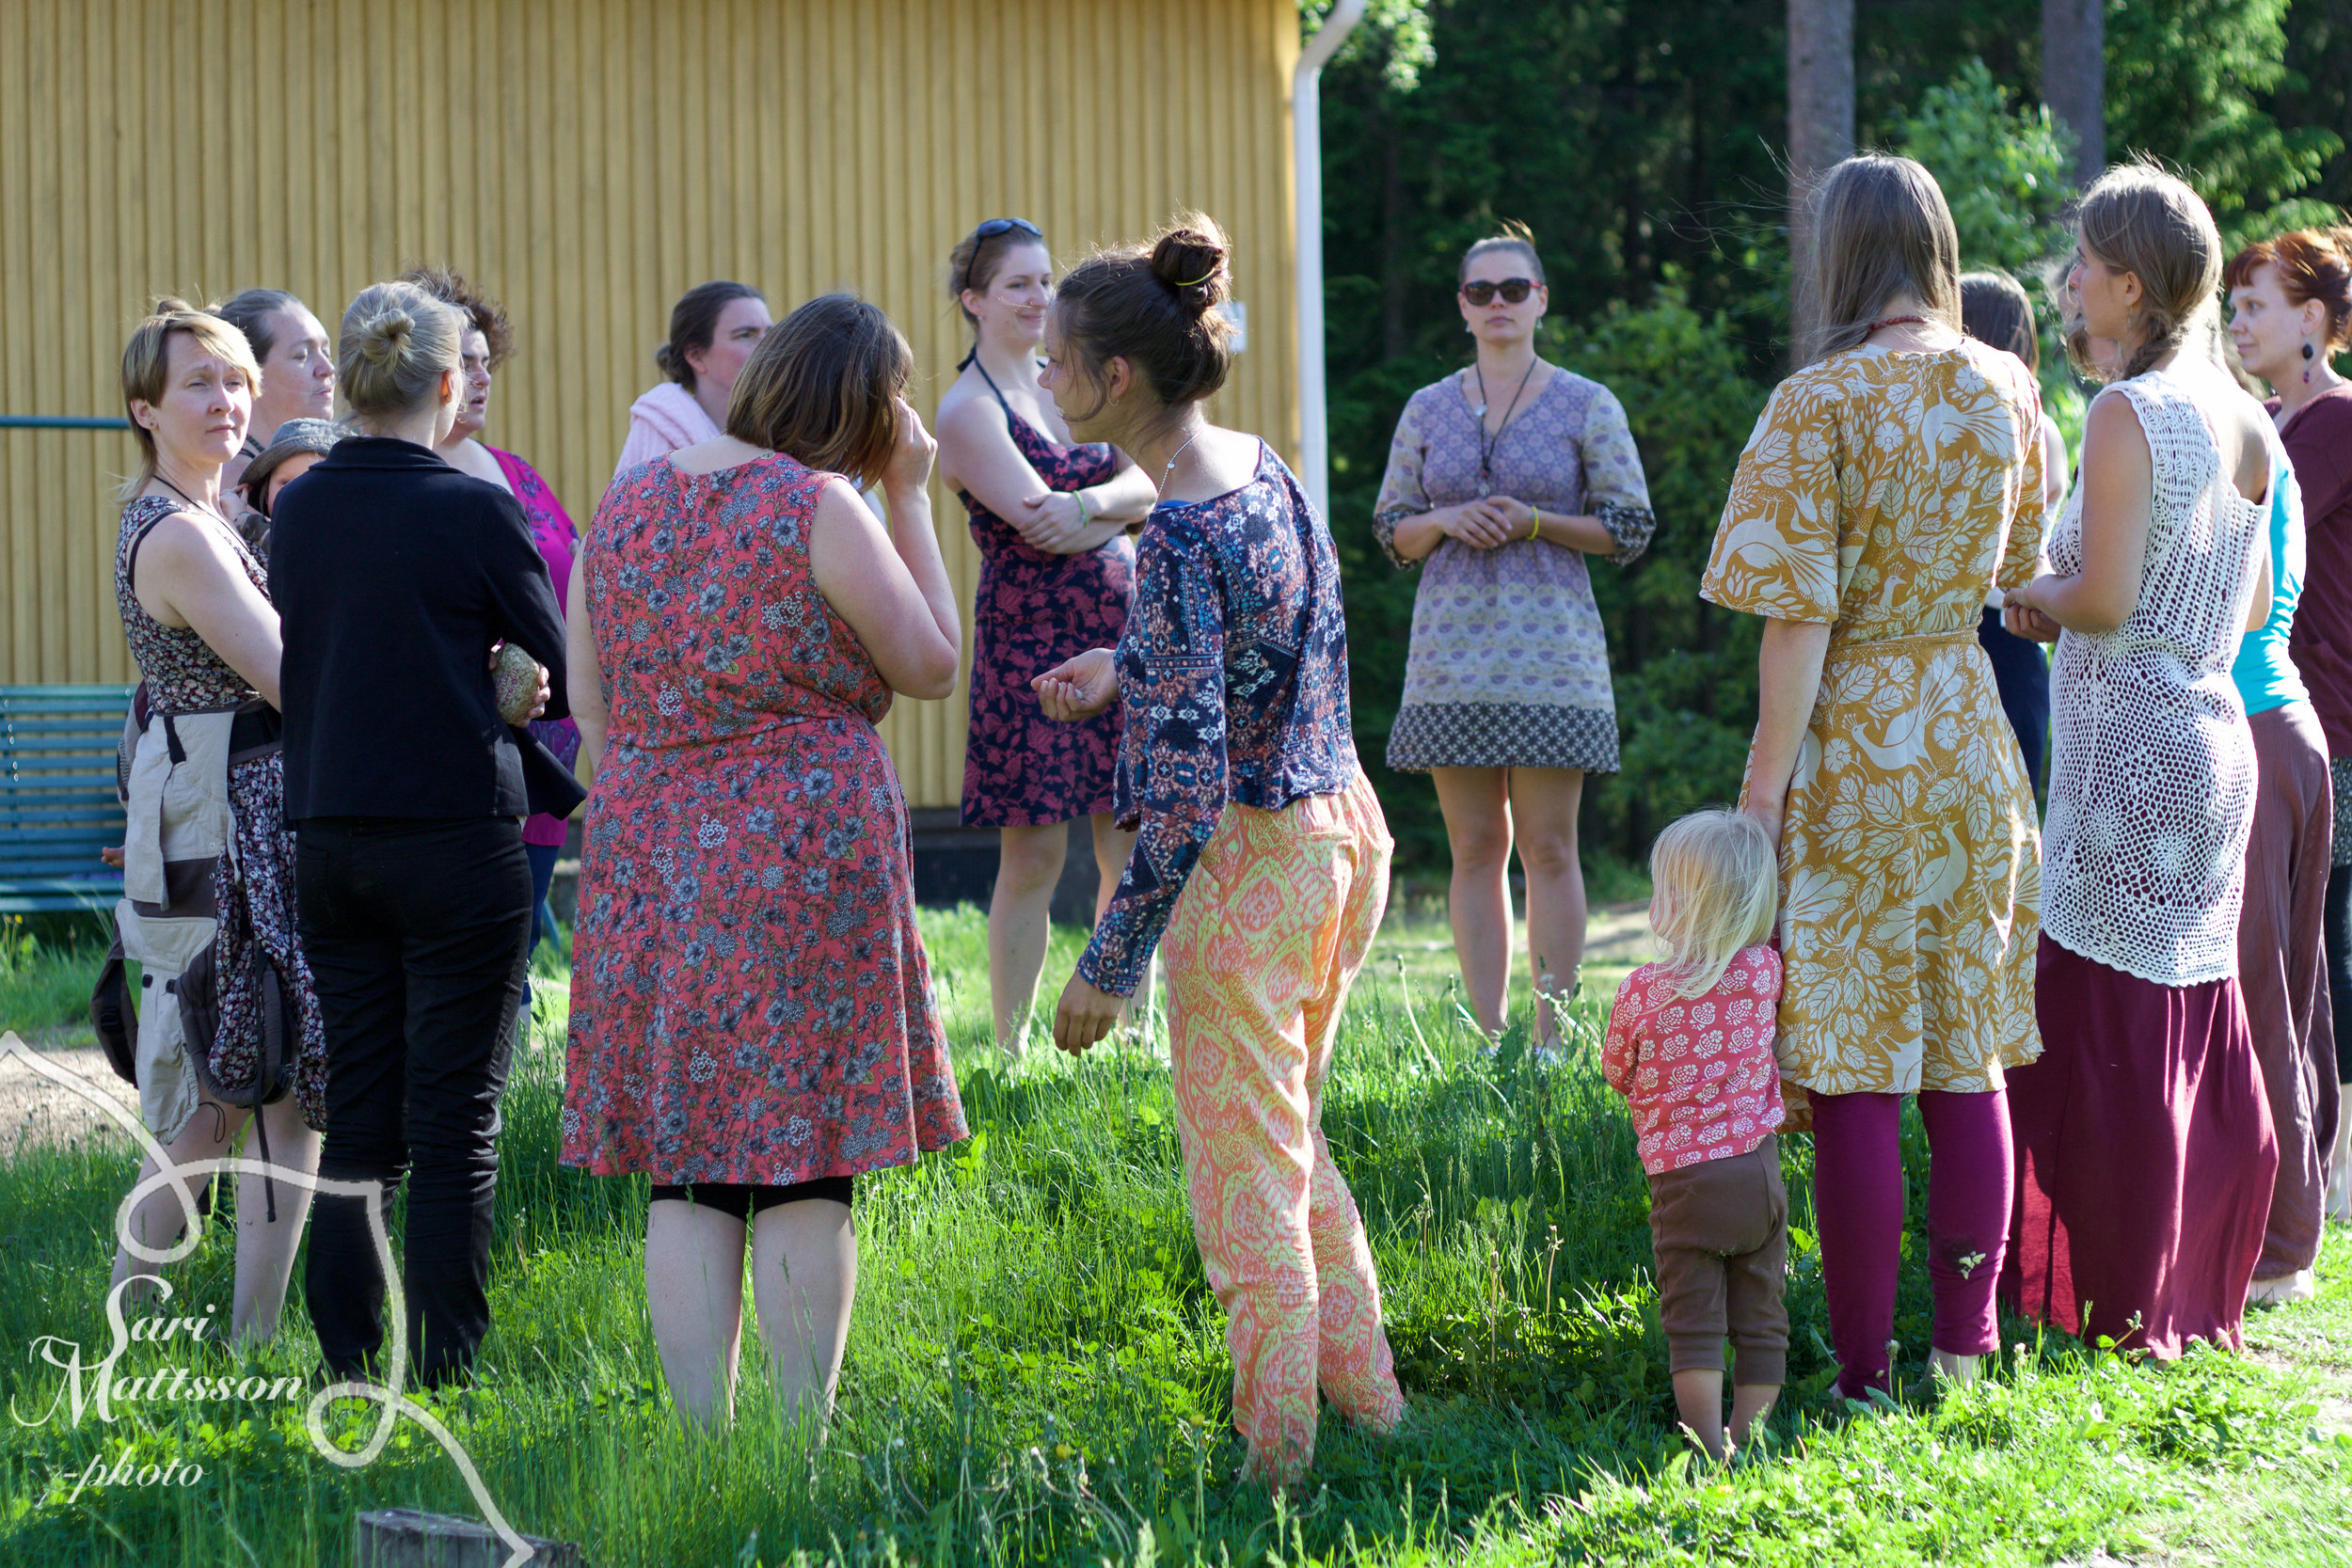 Photo courtesy of Sari Mattesson food styling and photography from the Sacred Pregnancy instructor retreat in Finland